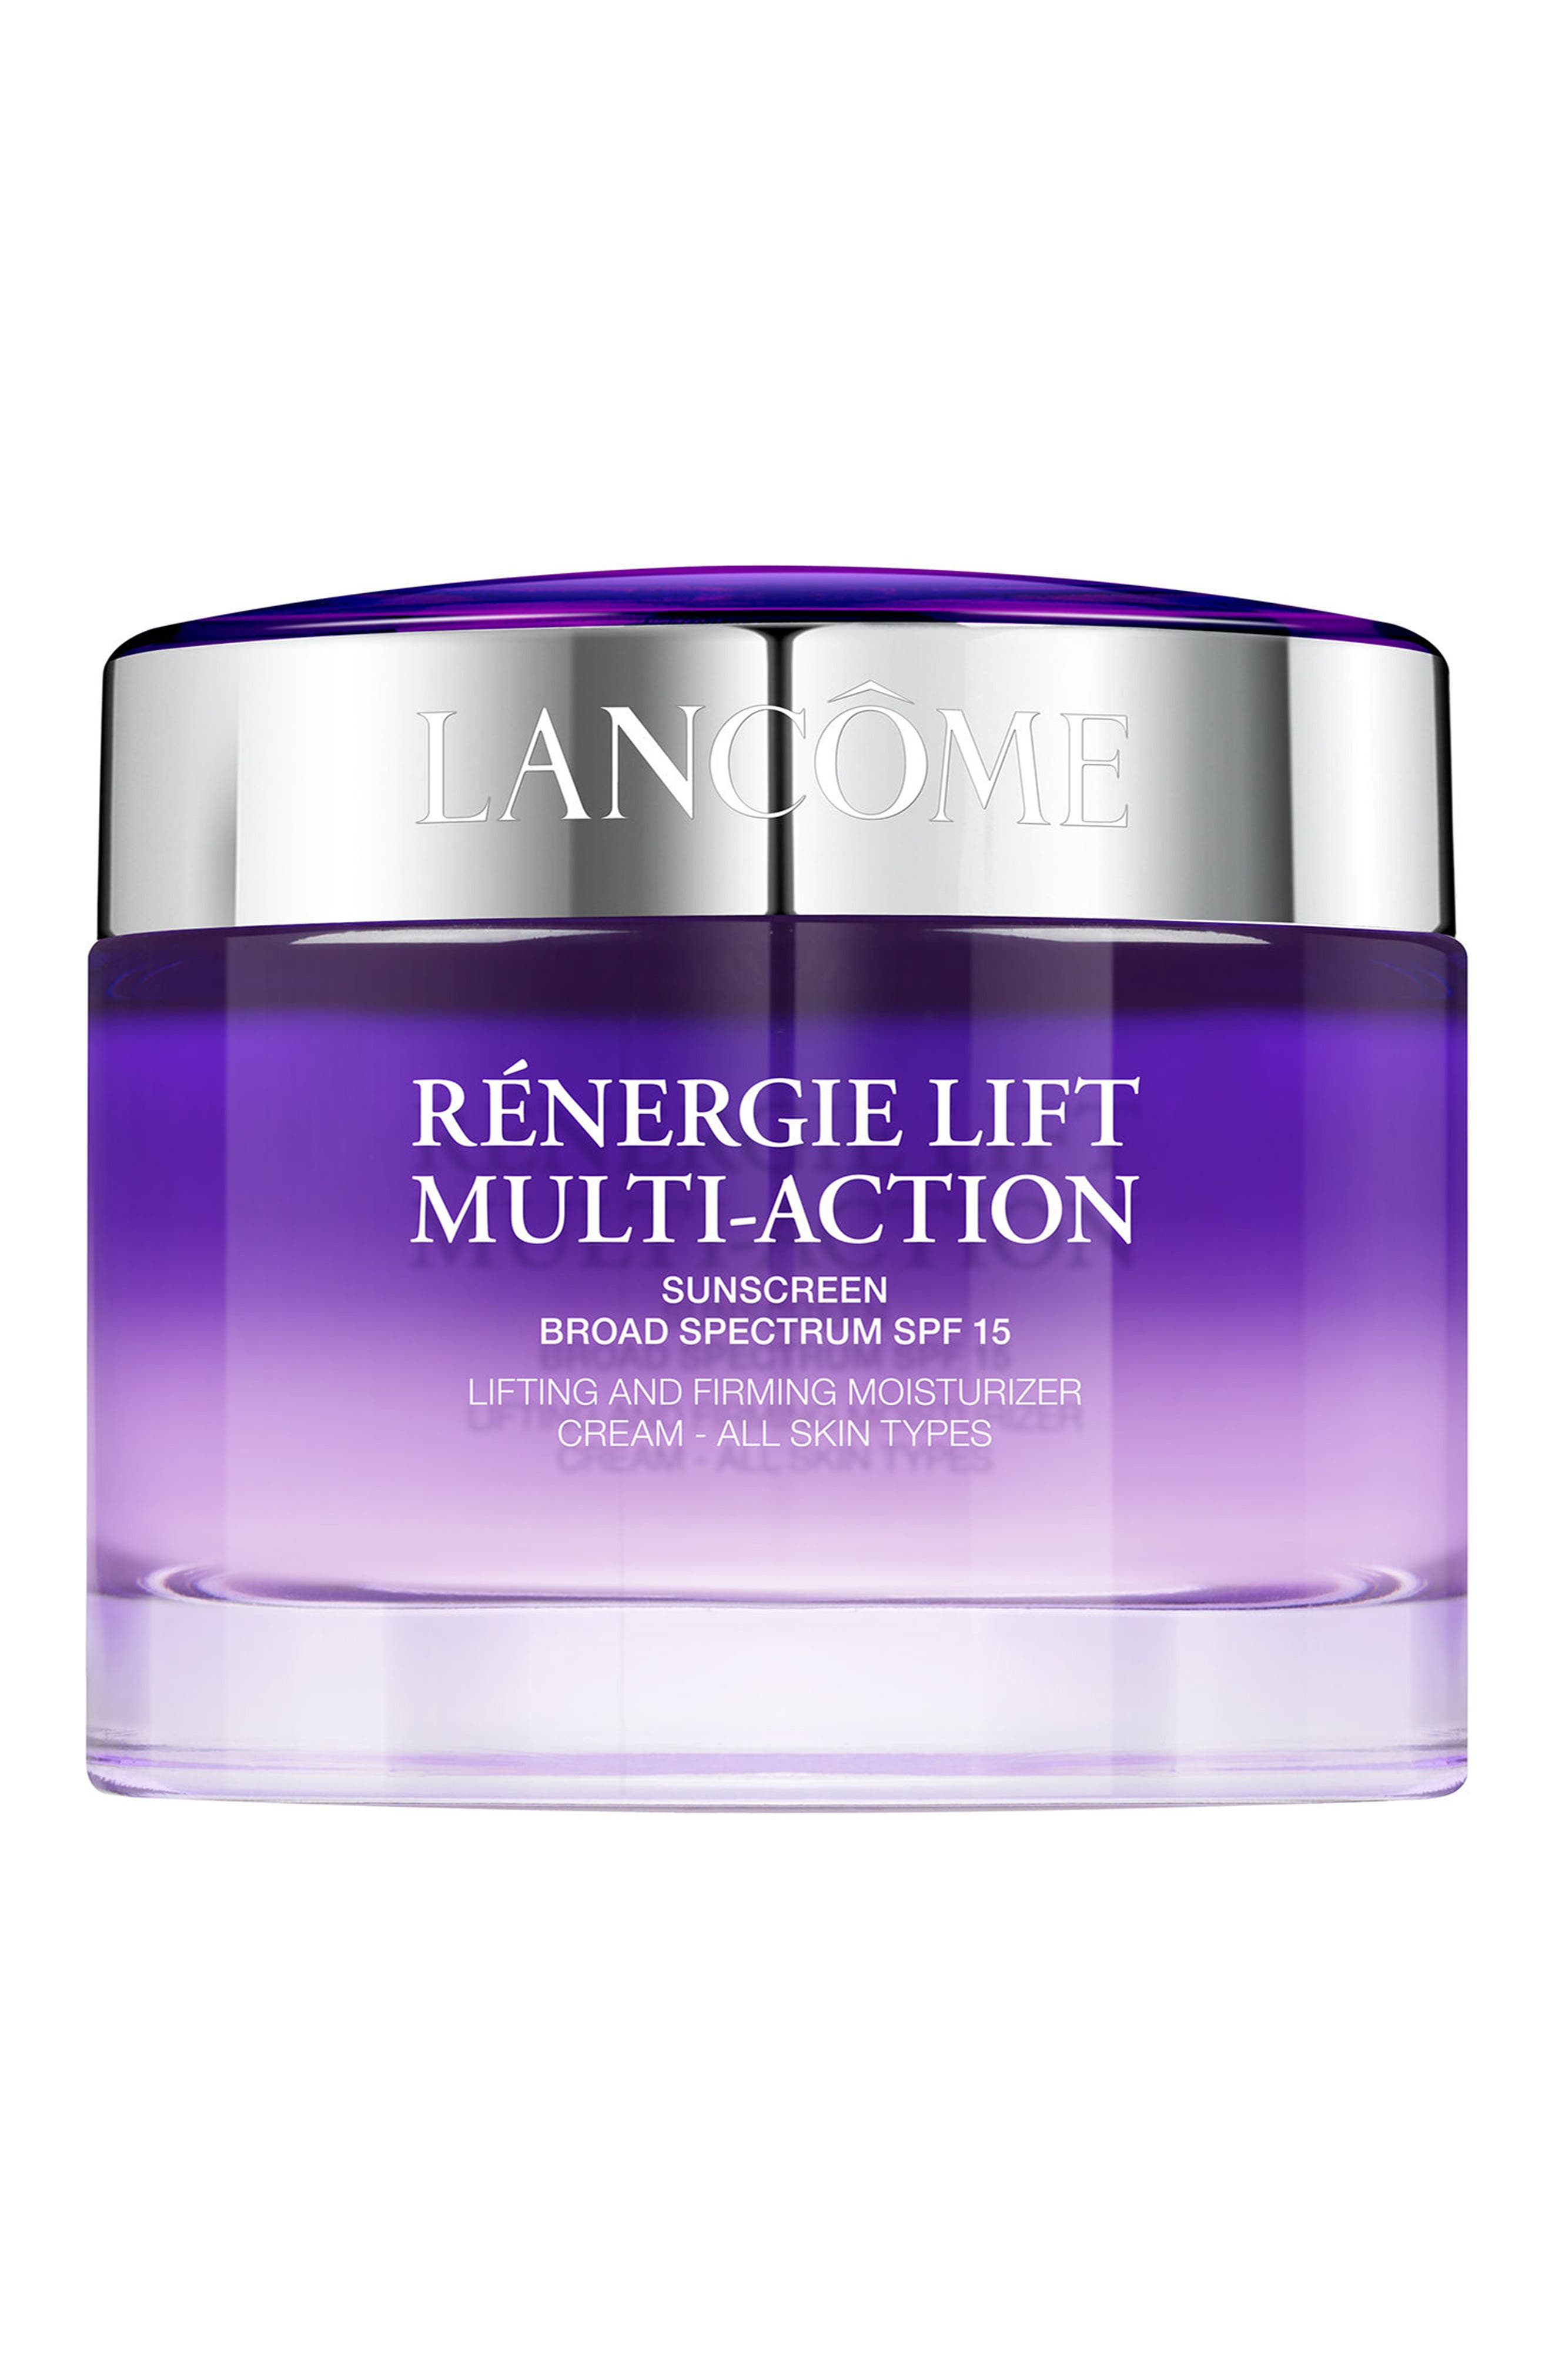 Alternate Image 1 Selected - Lancôme Rénergie Lift Multi Action Moisturizer Cream SPF 15 for All Skin Types